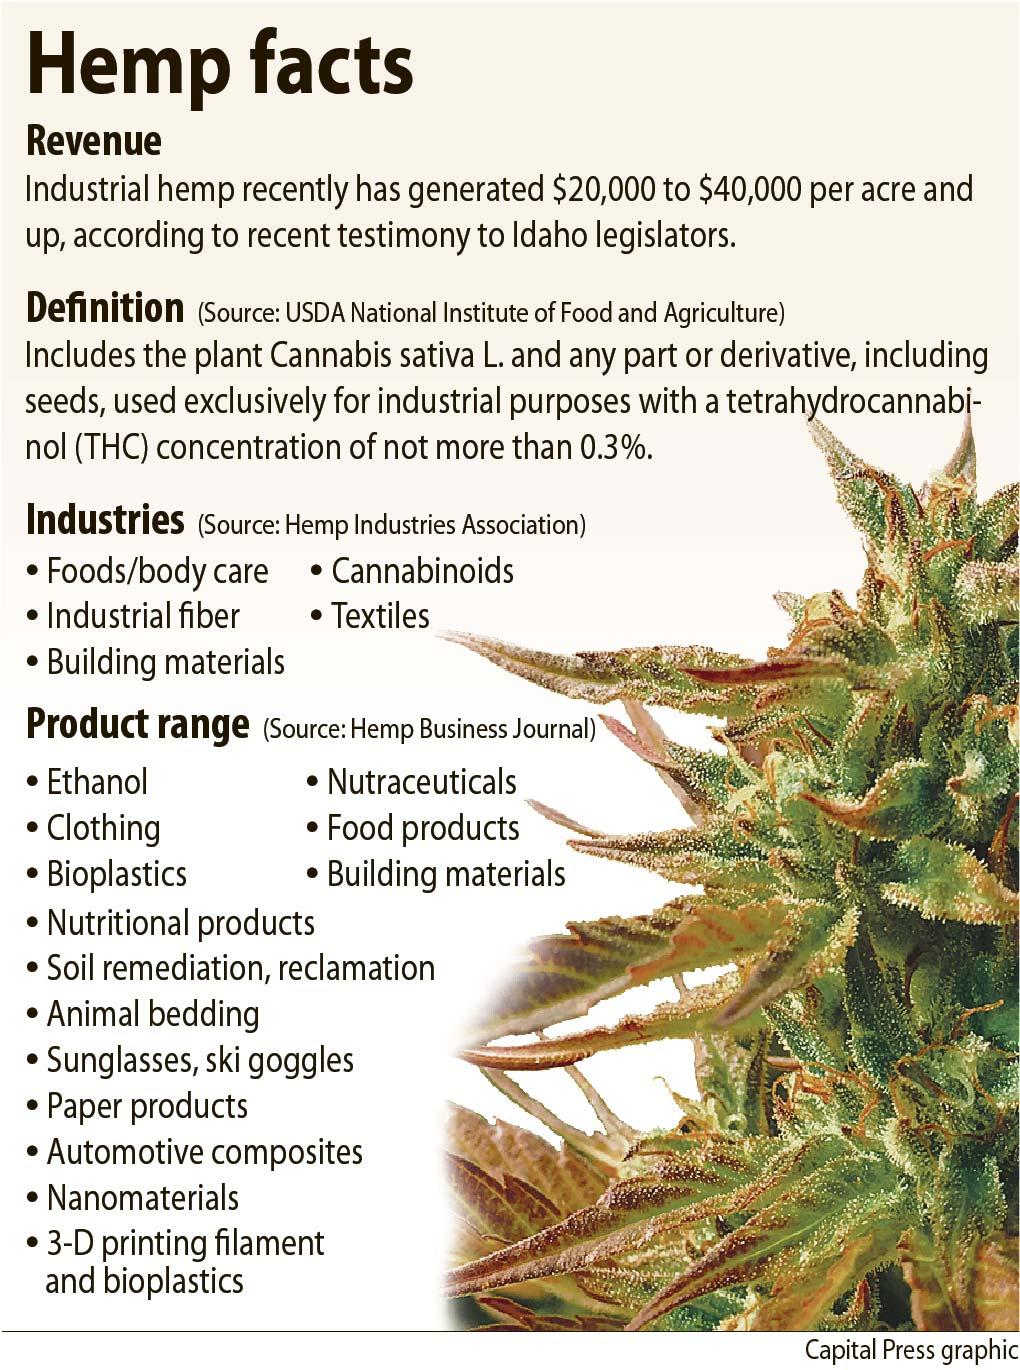 Hemp Gains Ground Among Farmers Profit Center Capitalpress Com